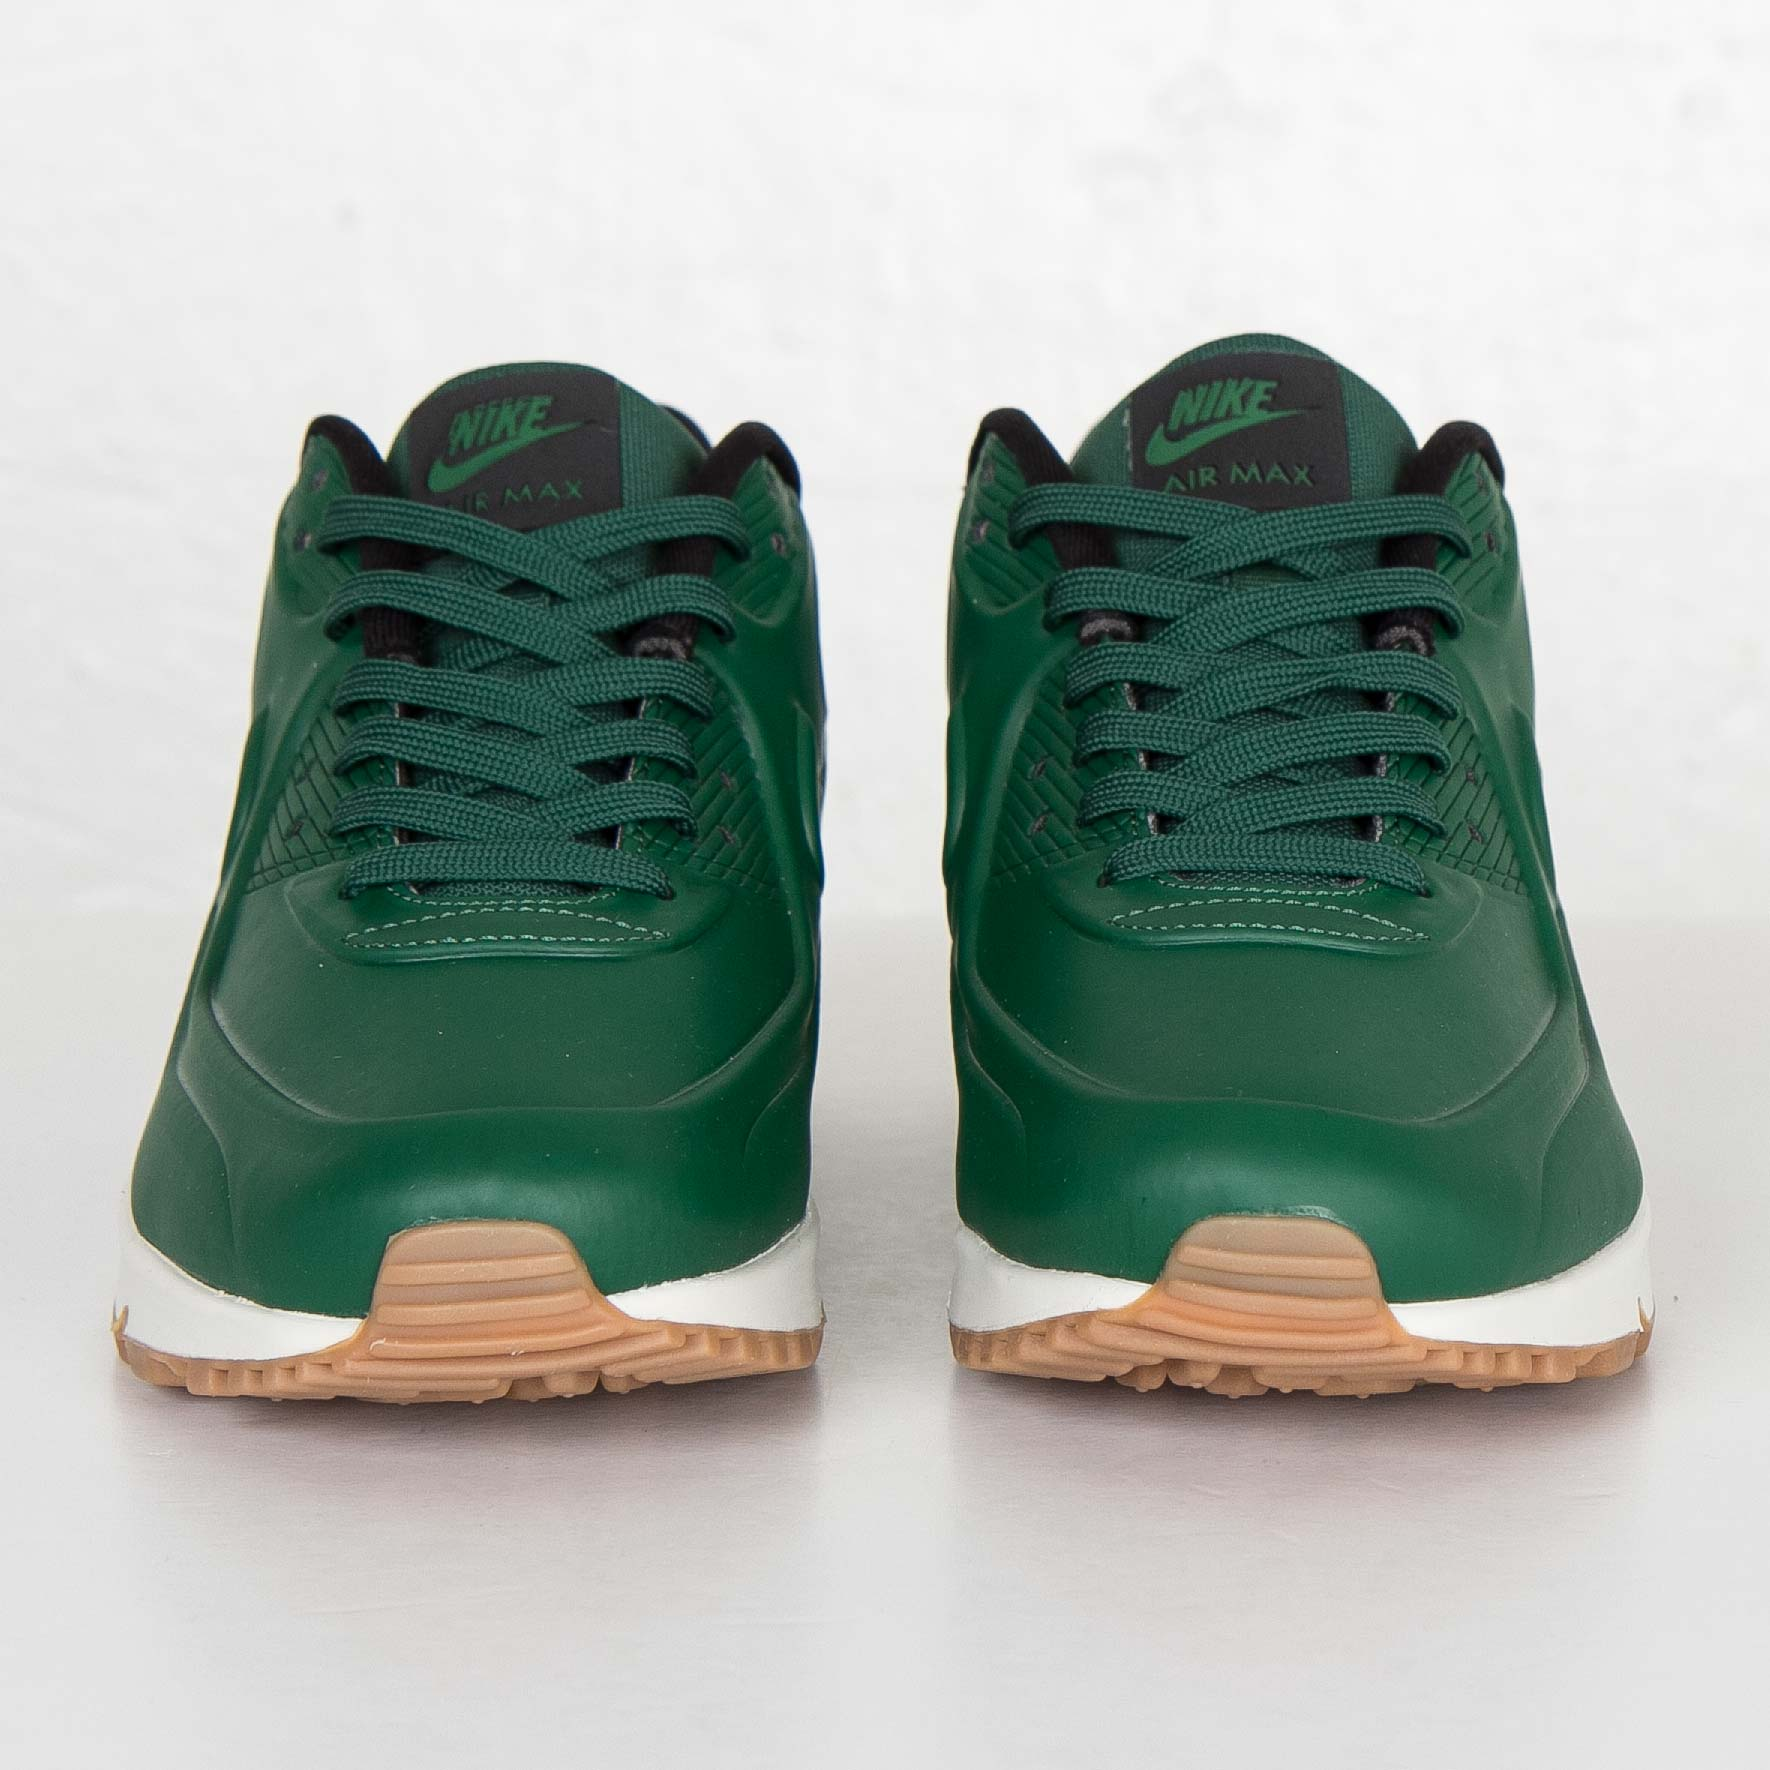 Air Max 90 VT QS Gorge Green Unboxing Video at Exclucity